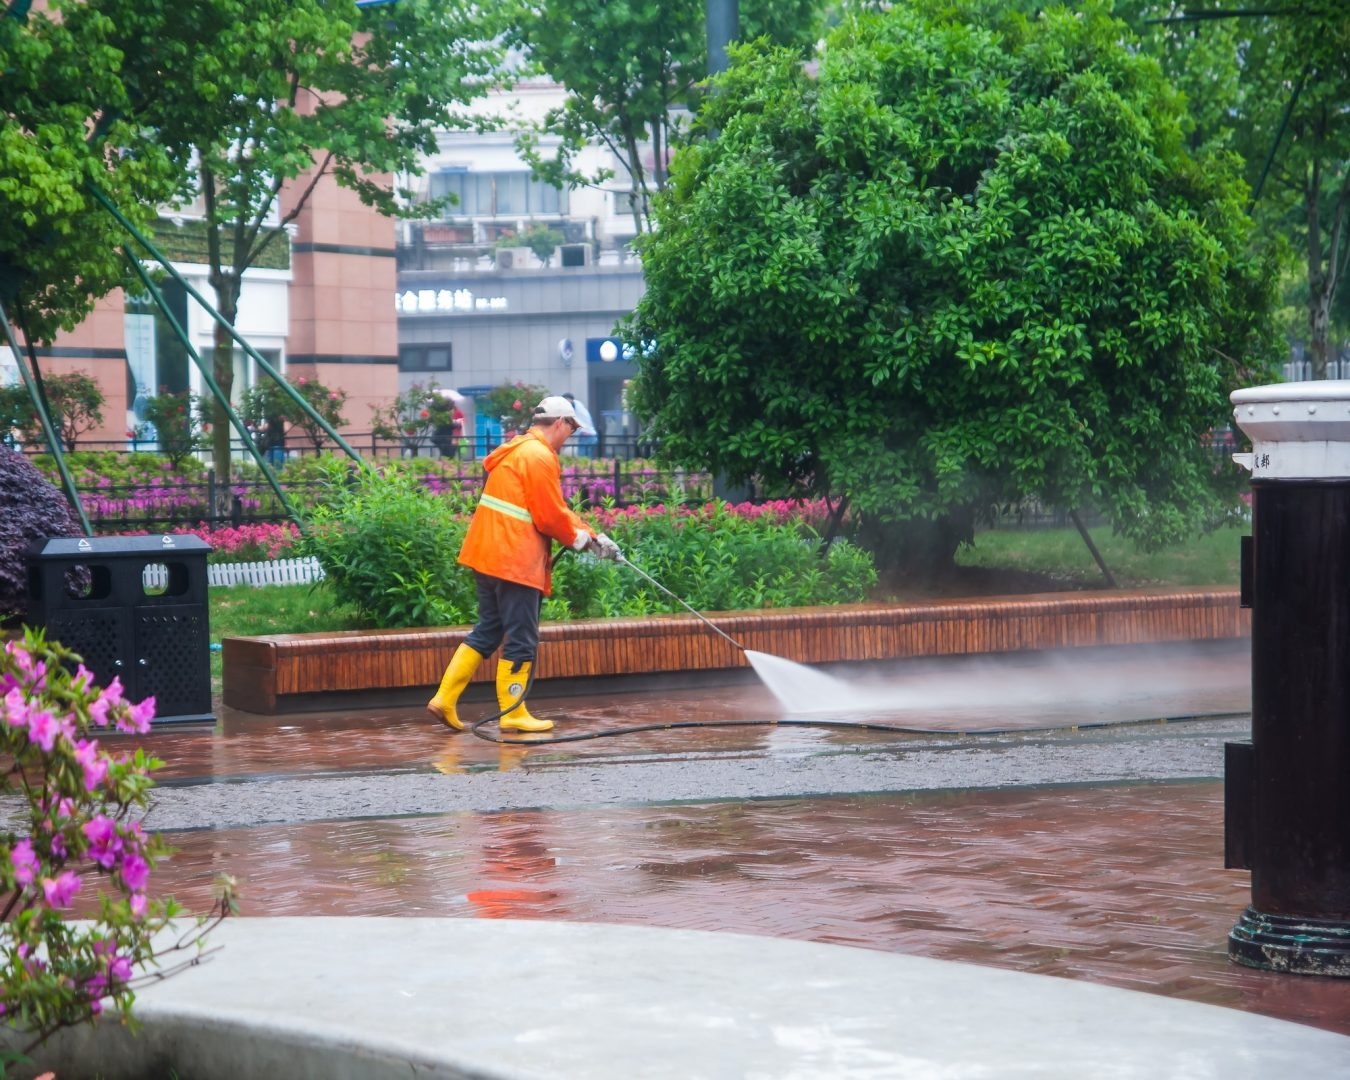 worker washing the pavement road in Wuhan, China